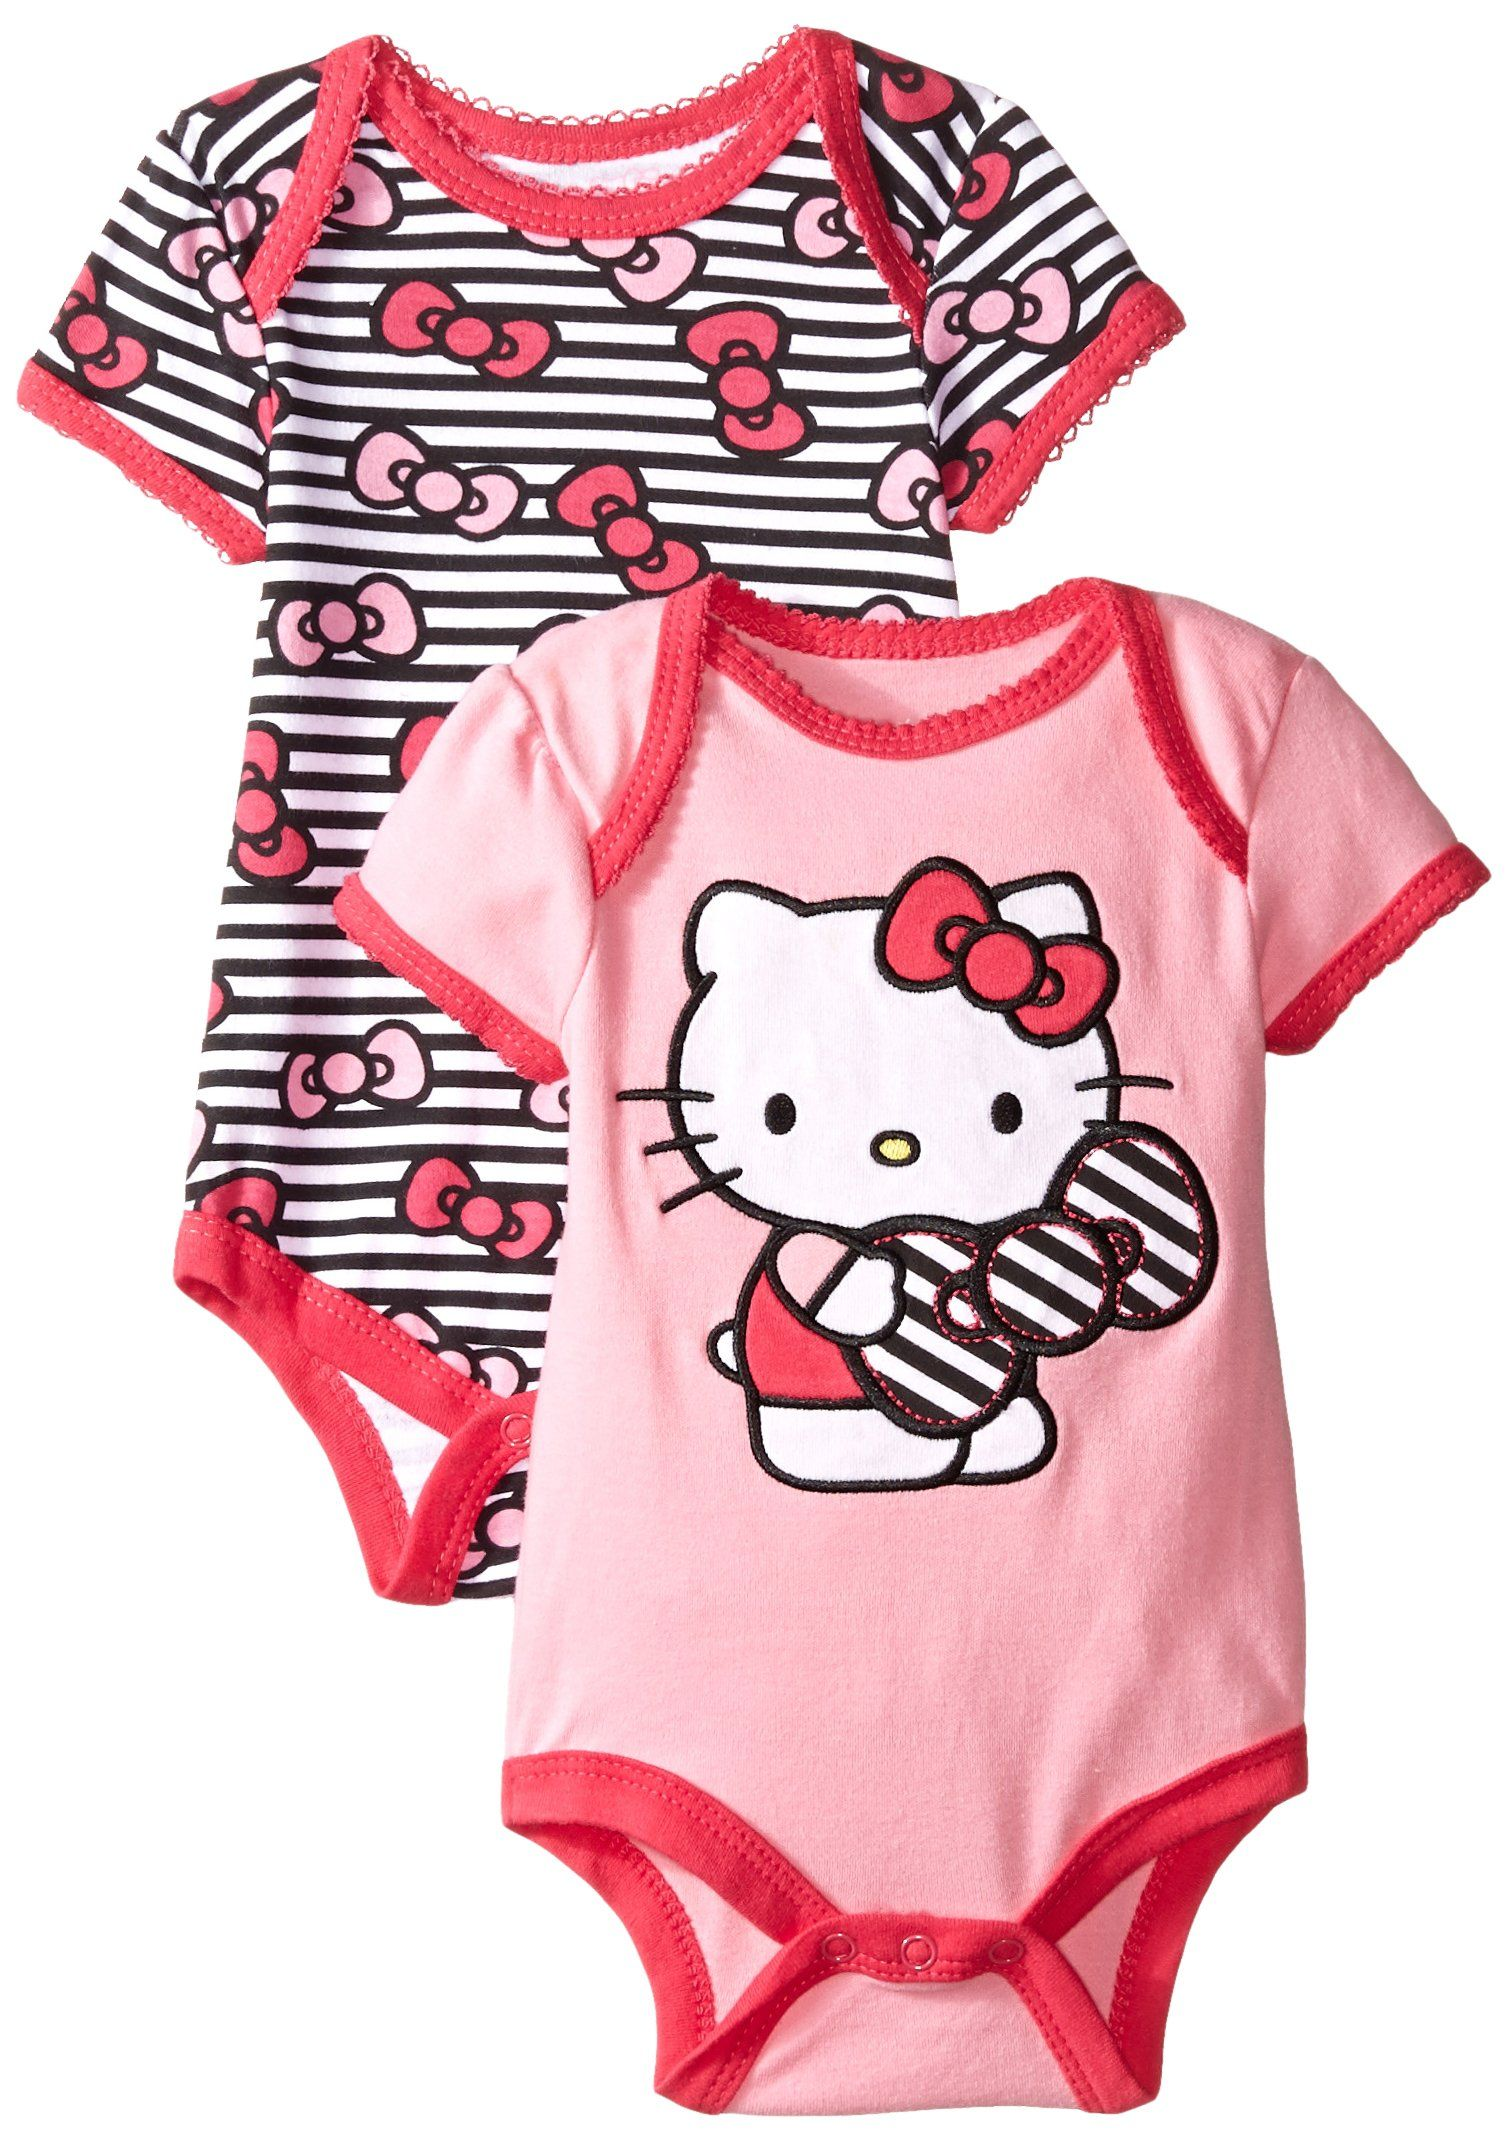 5b8df4b37 Amazon.com: Hello Kitty Baby-Girls Newborn Love 2 Pack Bodysuit: Clothing